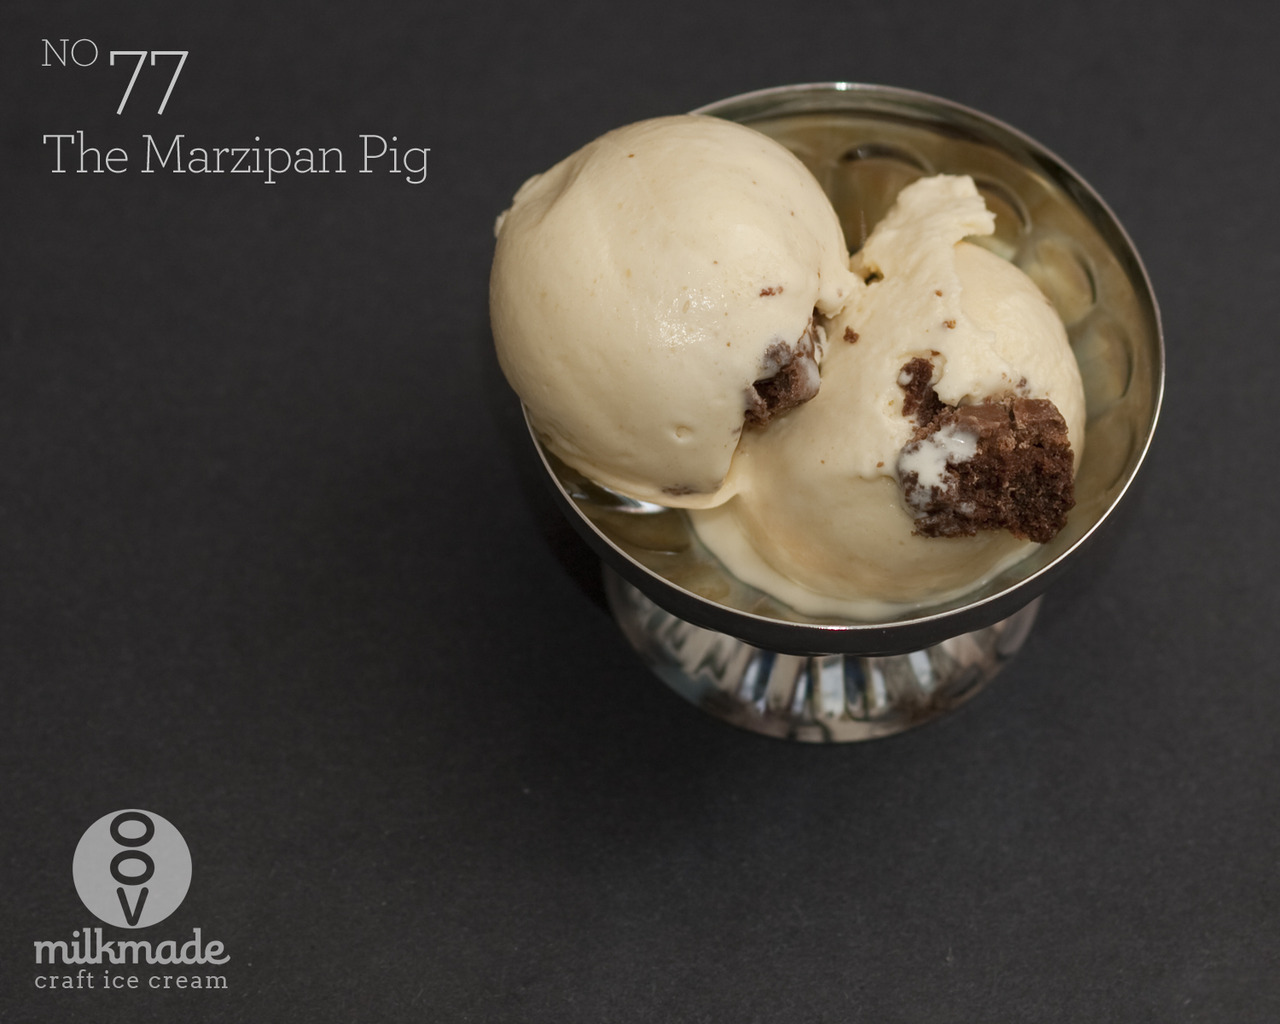 flavor of the day: The Marzipan Pigmarzipan ice cream with chocolate truffleHappy New Year everyone!  Dunno about y'all, but we have big goals for 2013. So we're looking for all the luck we can get. To start it off, we partook in just about every New Year's Eve tradition we know - lasagna for dinner, 12 grapes at midnight (see Flavor #54), dish throwing, jumping 12 waves (hope piles of snow counted), welcoming a tall, dark, handsome gentlemen as the first guest to our home (if only!), collared greens, black eyes peas — the works, you guys! And lest we forget the Marzipan Pig, the candy pig that bestows luck and prosperity upon its recipient in the year to come. Well, we're spreading some of that good fortune on to our MilkMade Members with our first flavor of the year, The Marzipan Pig — a marzipan pint studded with house-made Mast Brothers chocolate truffles.